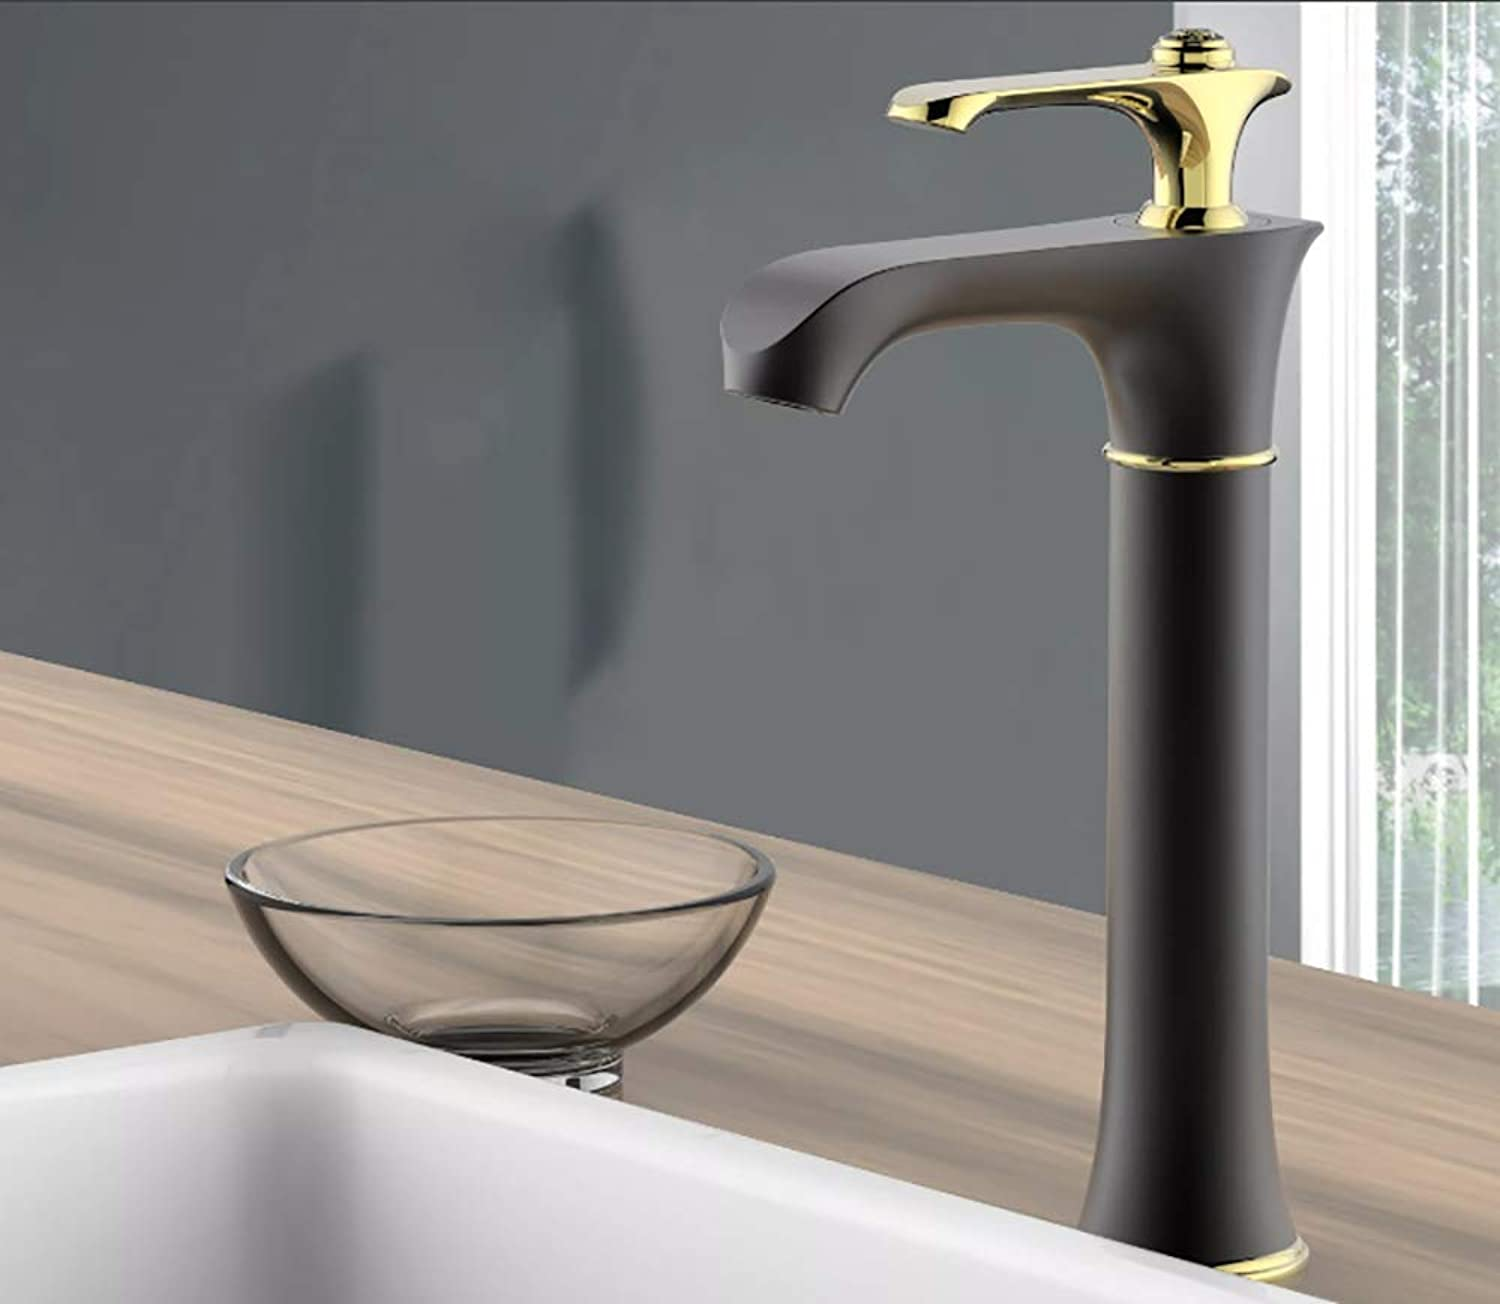 Y&XQ Y&XQBathroom faucet,sink faucet Single Handle prevent splashing, Single Control Modern Cold and heat regulation Retro Style copper faucet,gold,tall